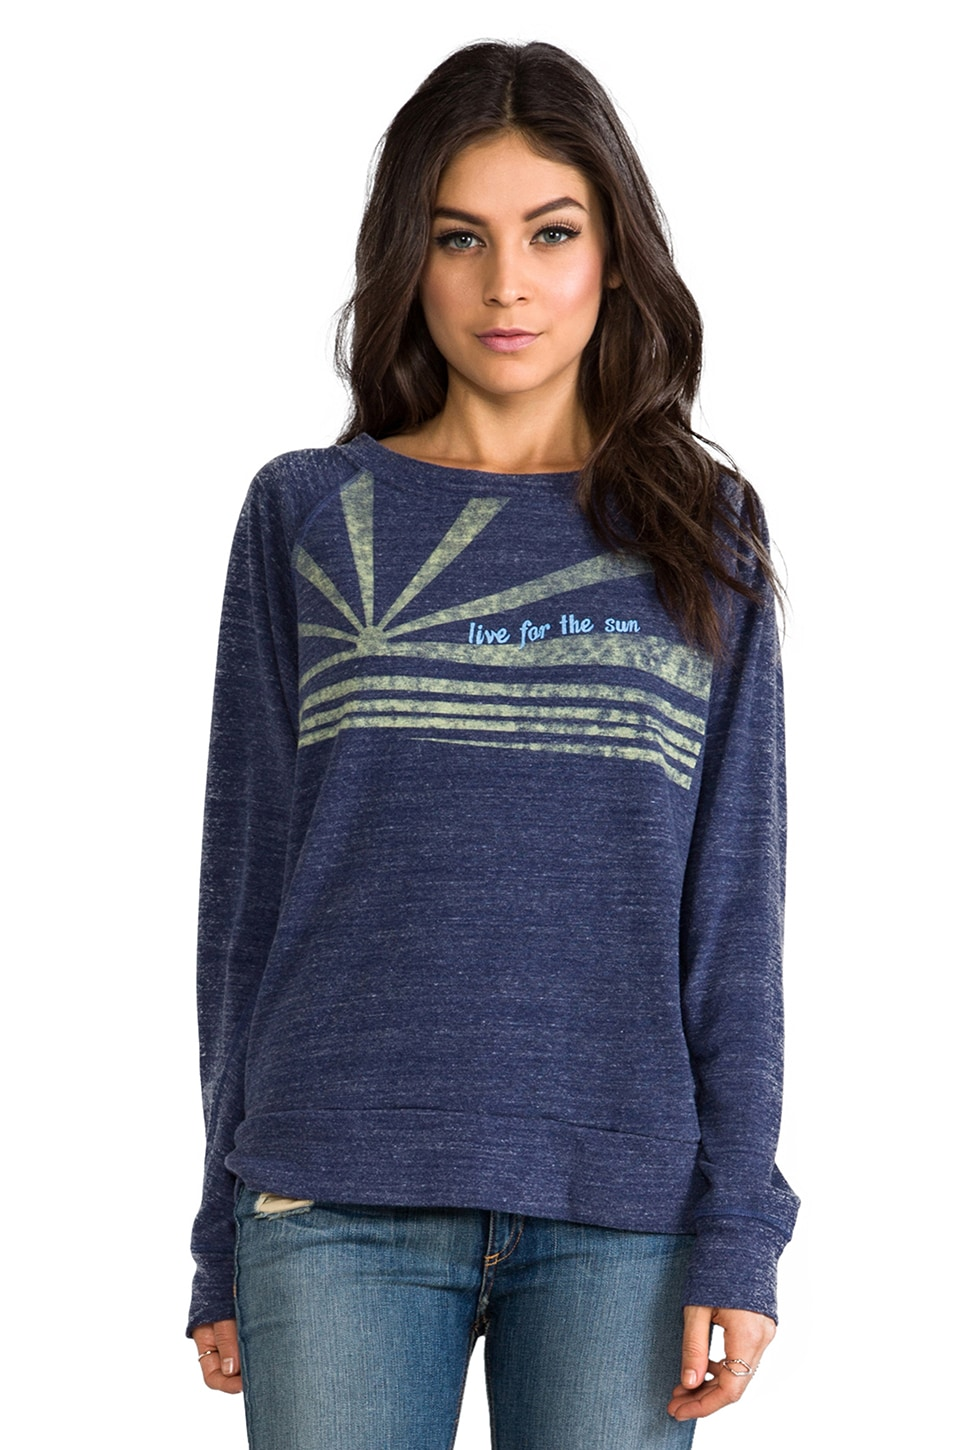 C&C California Live for the Sun Sweatshirt in Denim Blue